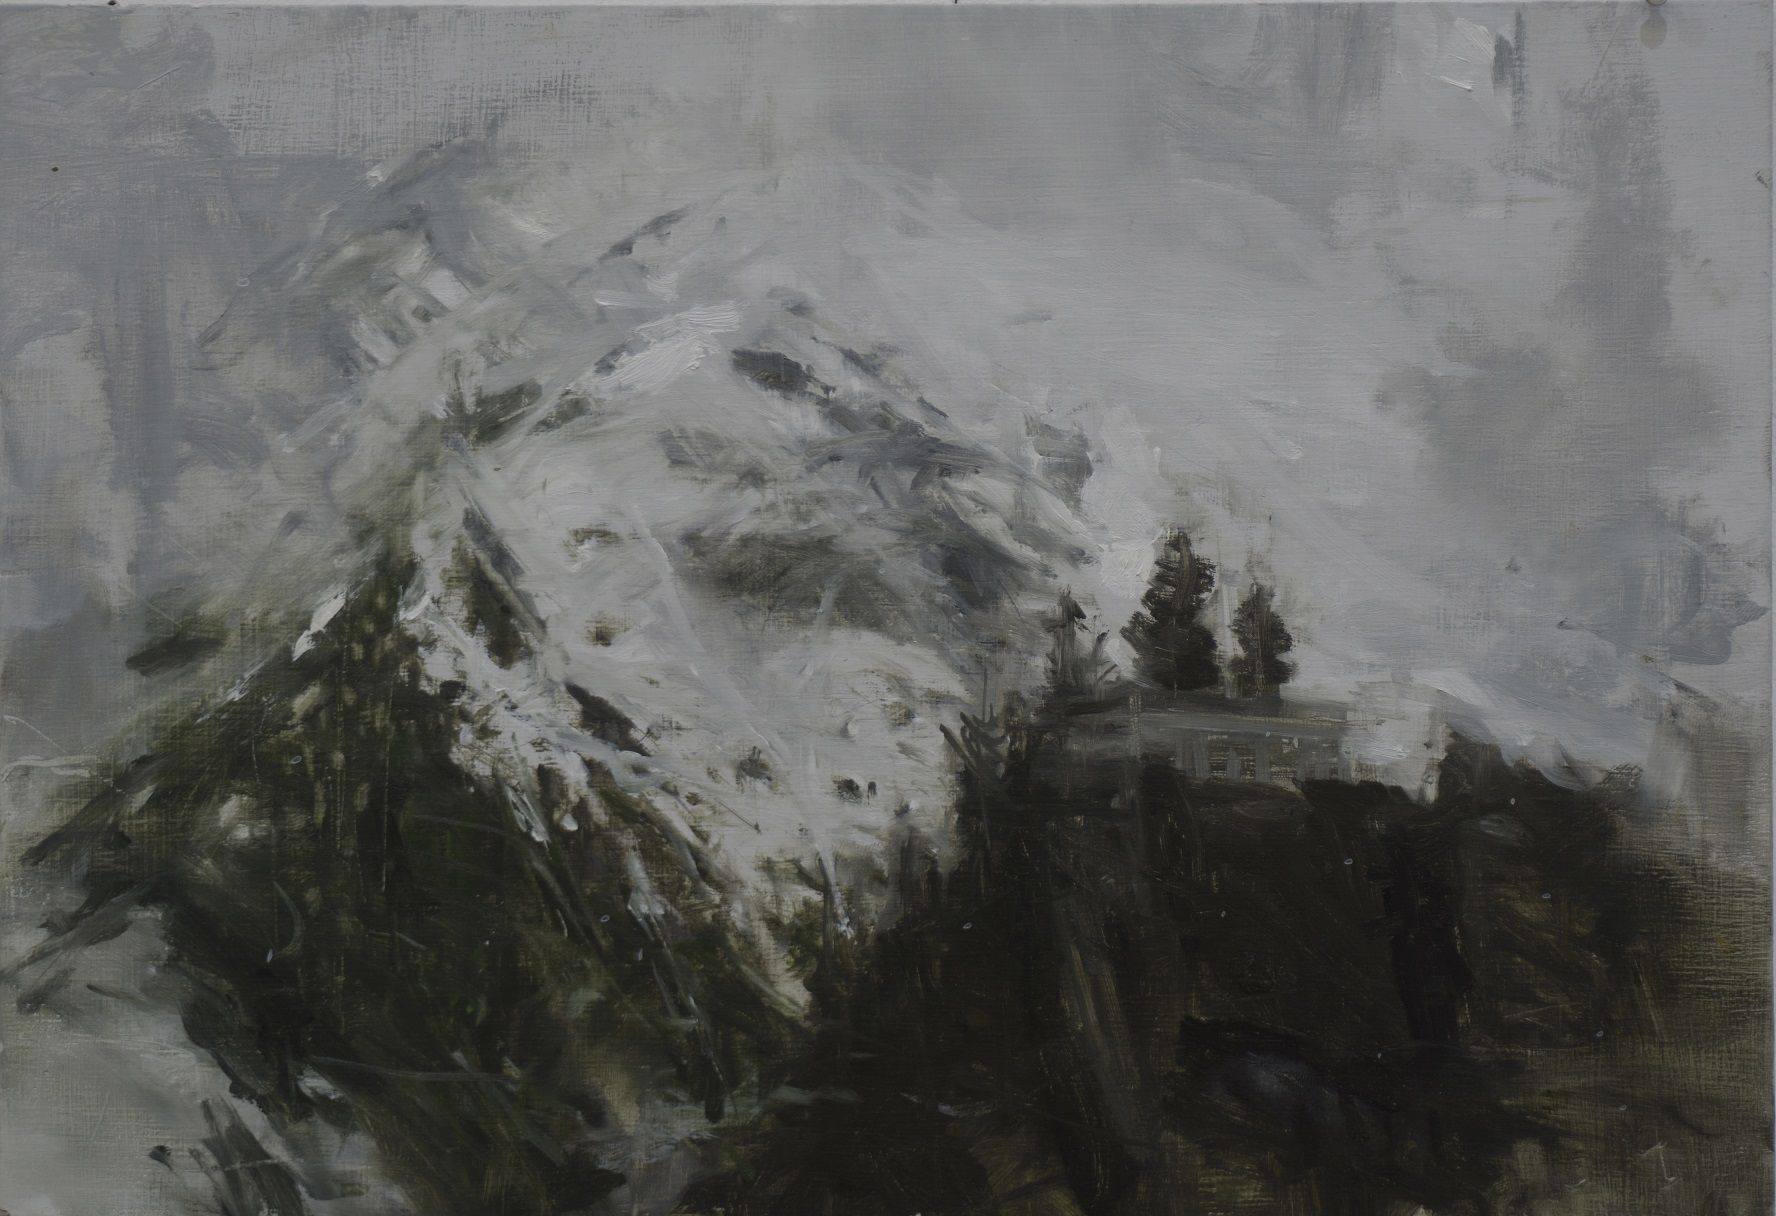 Benasque Study 5, Snow collection,Calo  Carratalá,Painting